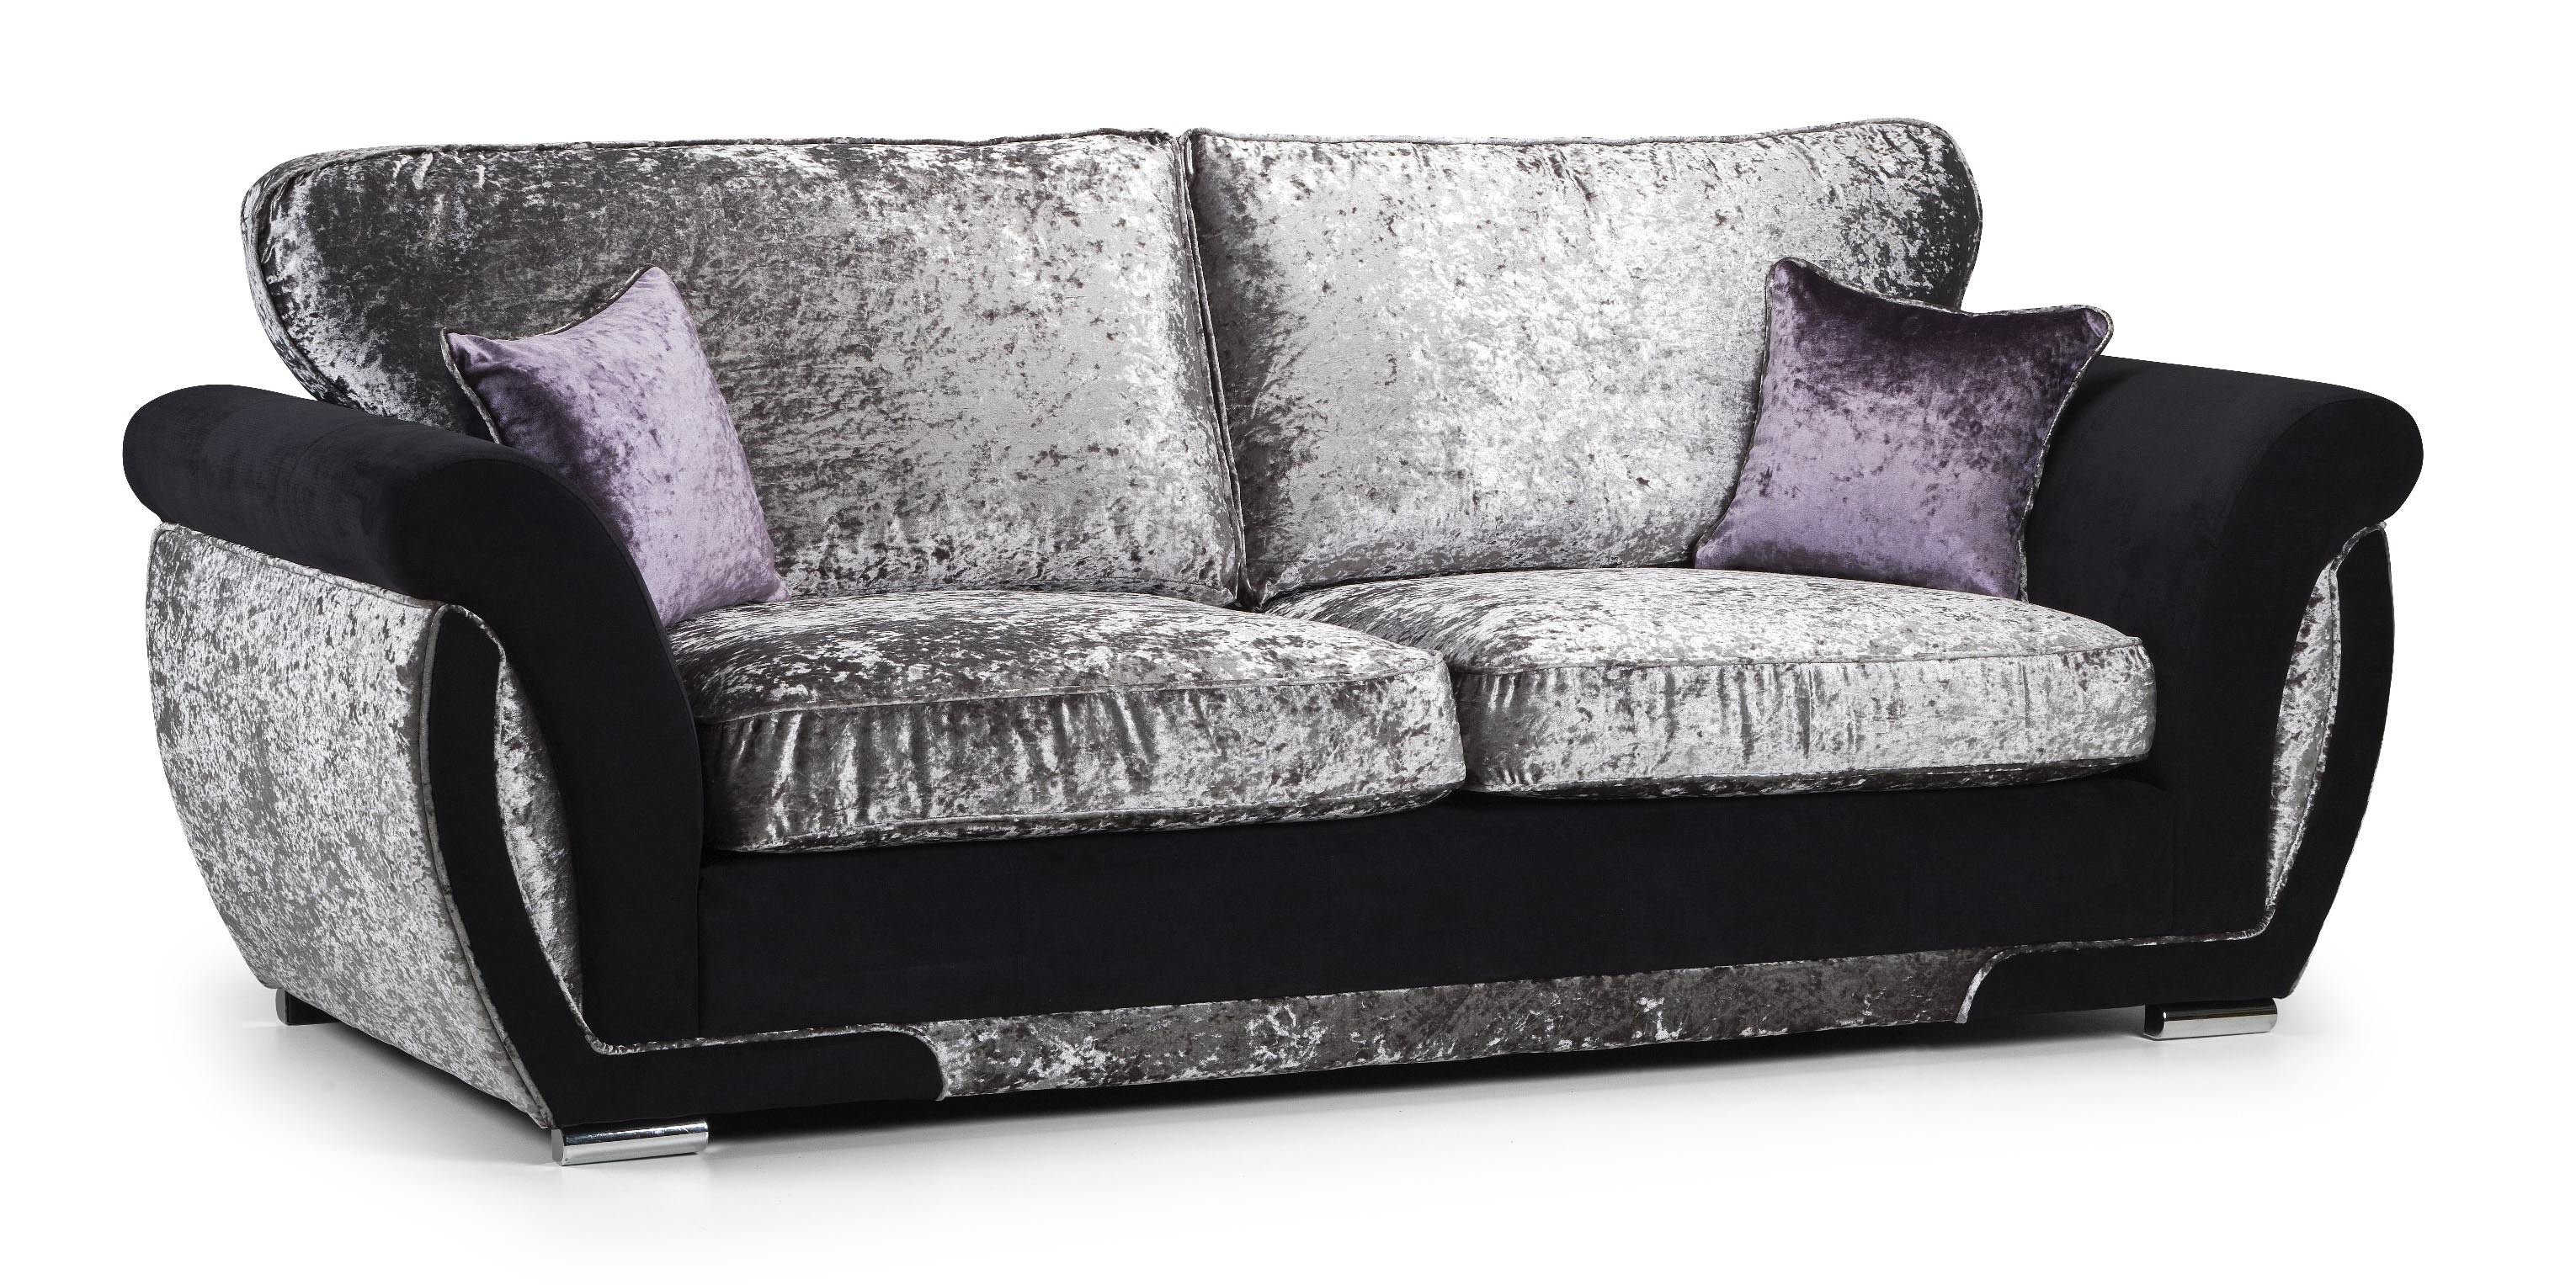 Crushed velvet sofas near Leeds